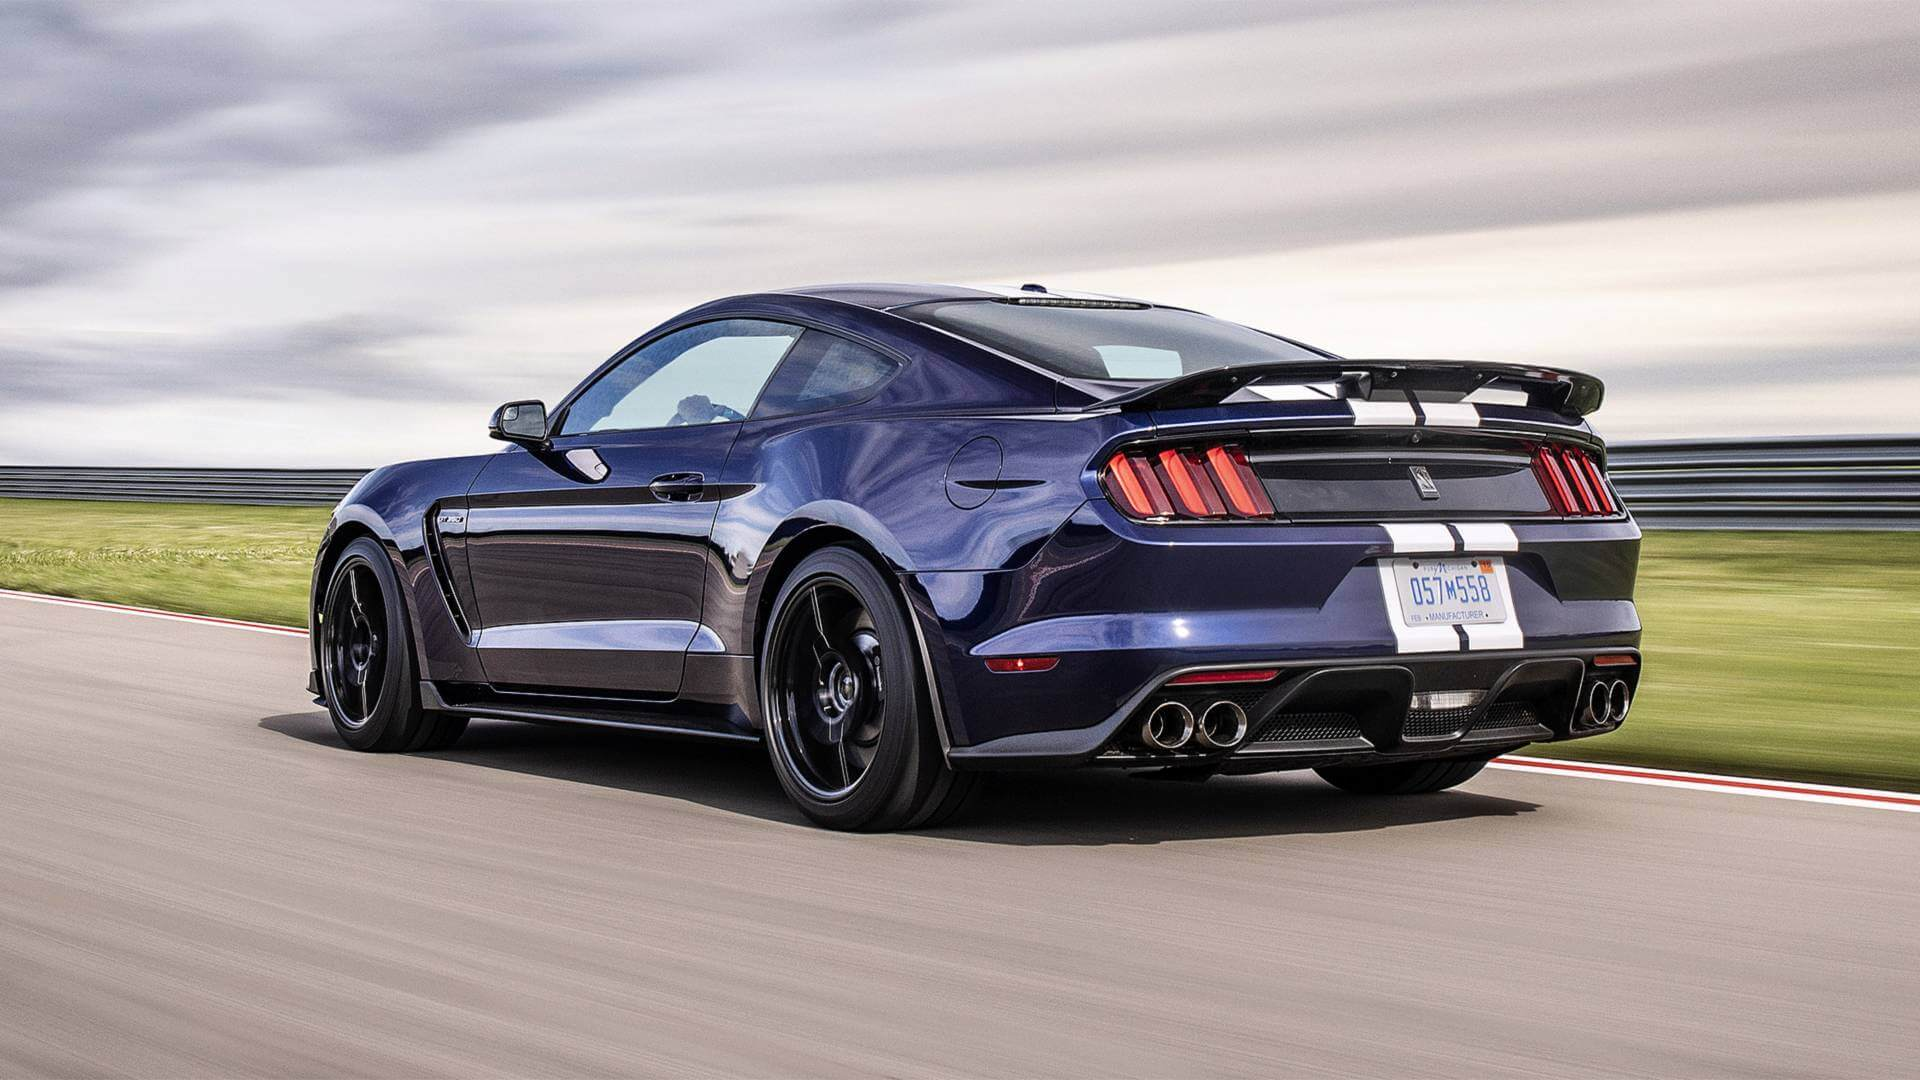 The Shelby GT350 just got faster for 2019